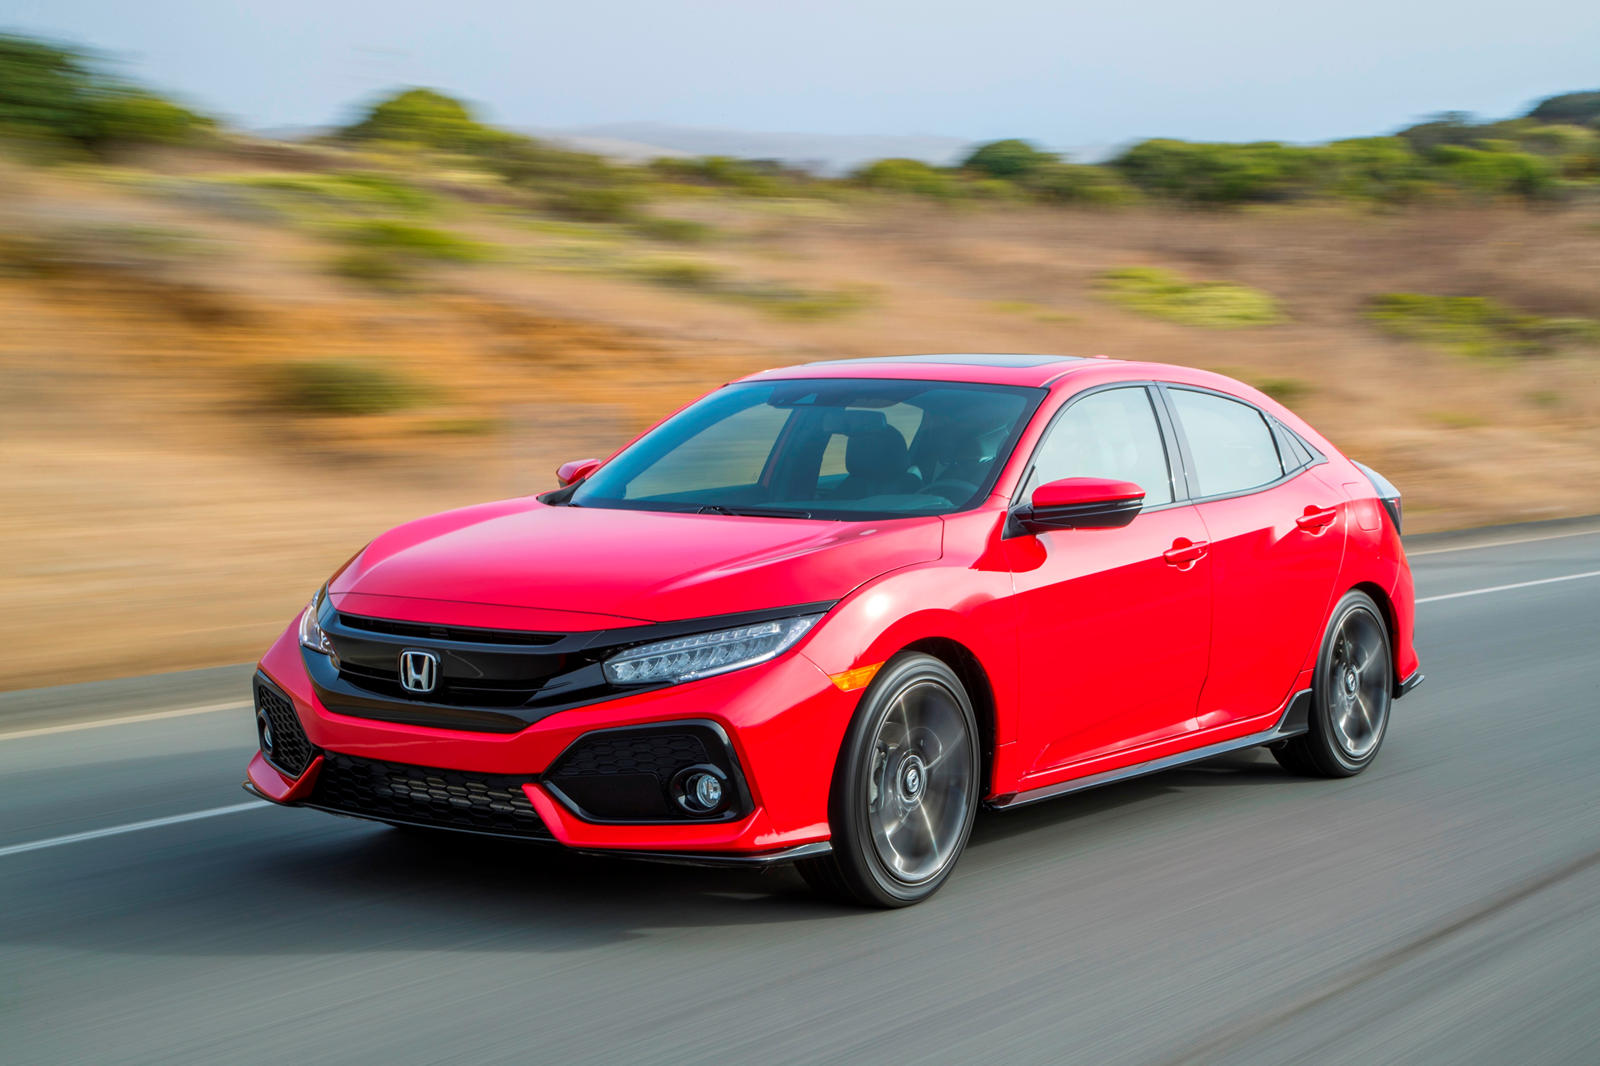 2020 Honda Civic Hatchback Review, Trims, Specs and Price ...